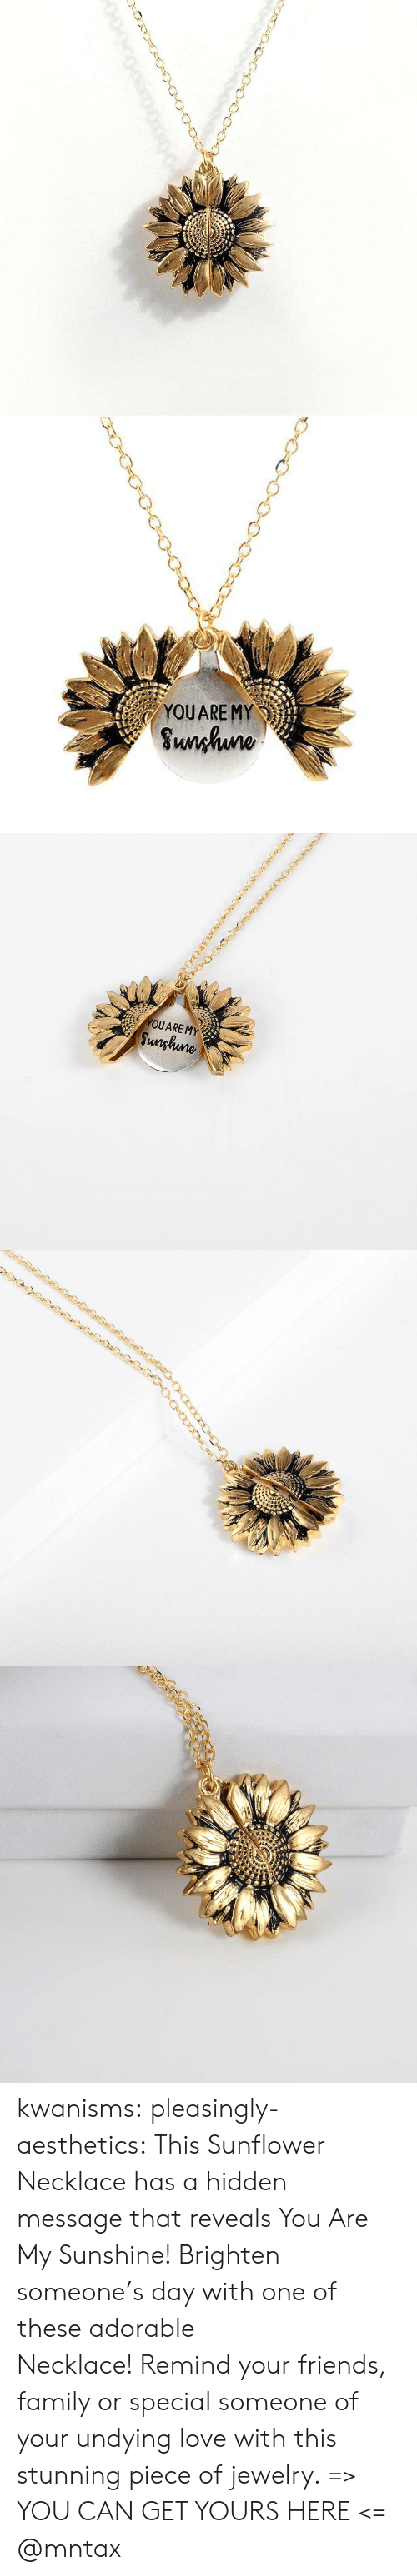 Family, Friends, and Love: YOUARE MY  Sunhuno   YOUARE MY  Sunghune kwanisms: pleasingly-aesthetics:  This Sunflower Necklace has a hidden message that reveals You Are My Sunshine! Brighten someone's day with one of these adorable Necklace!Remind your friends, family or special someone of your undying love with this stunning piece of jewelry. => YOU CAN GET YOURS HERE <=   @mntax